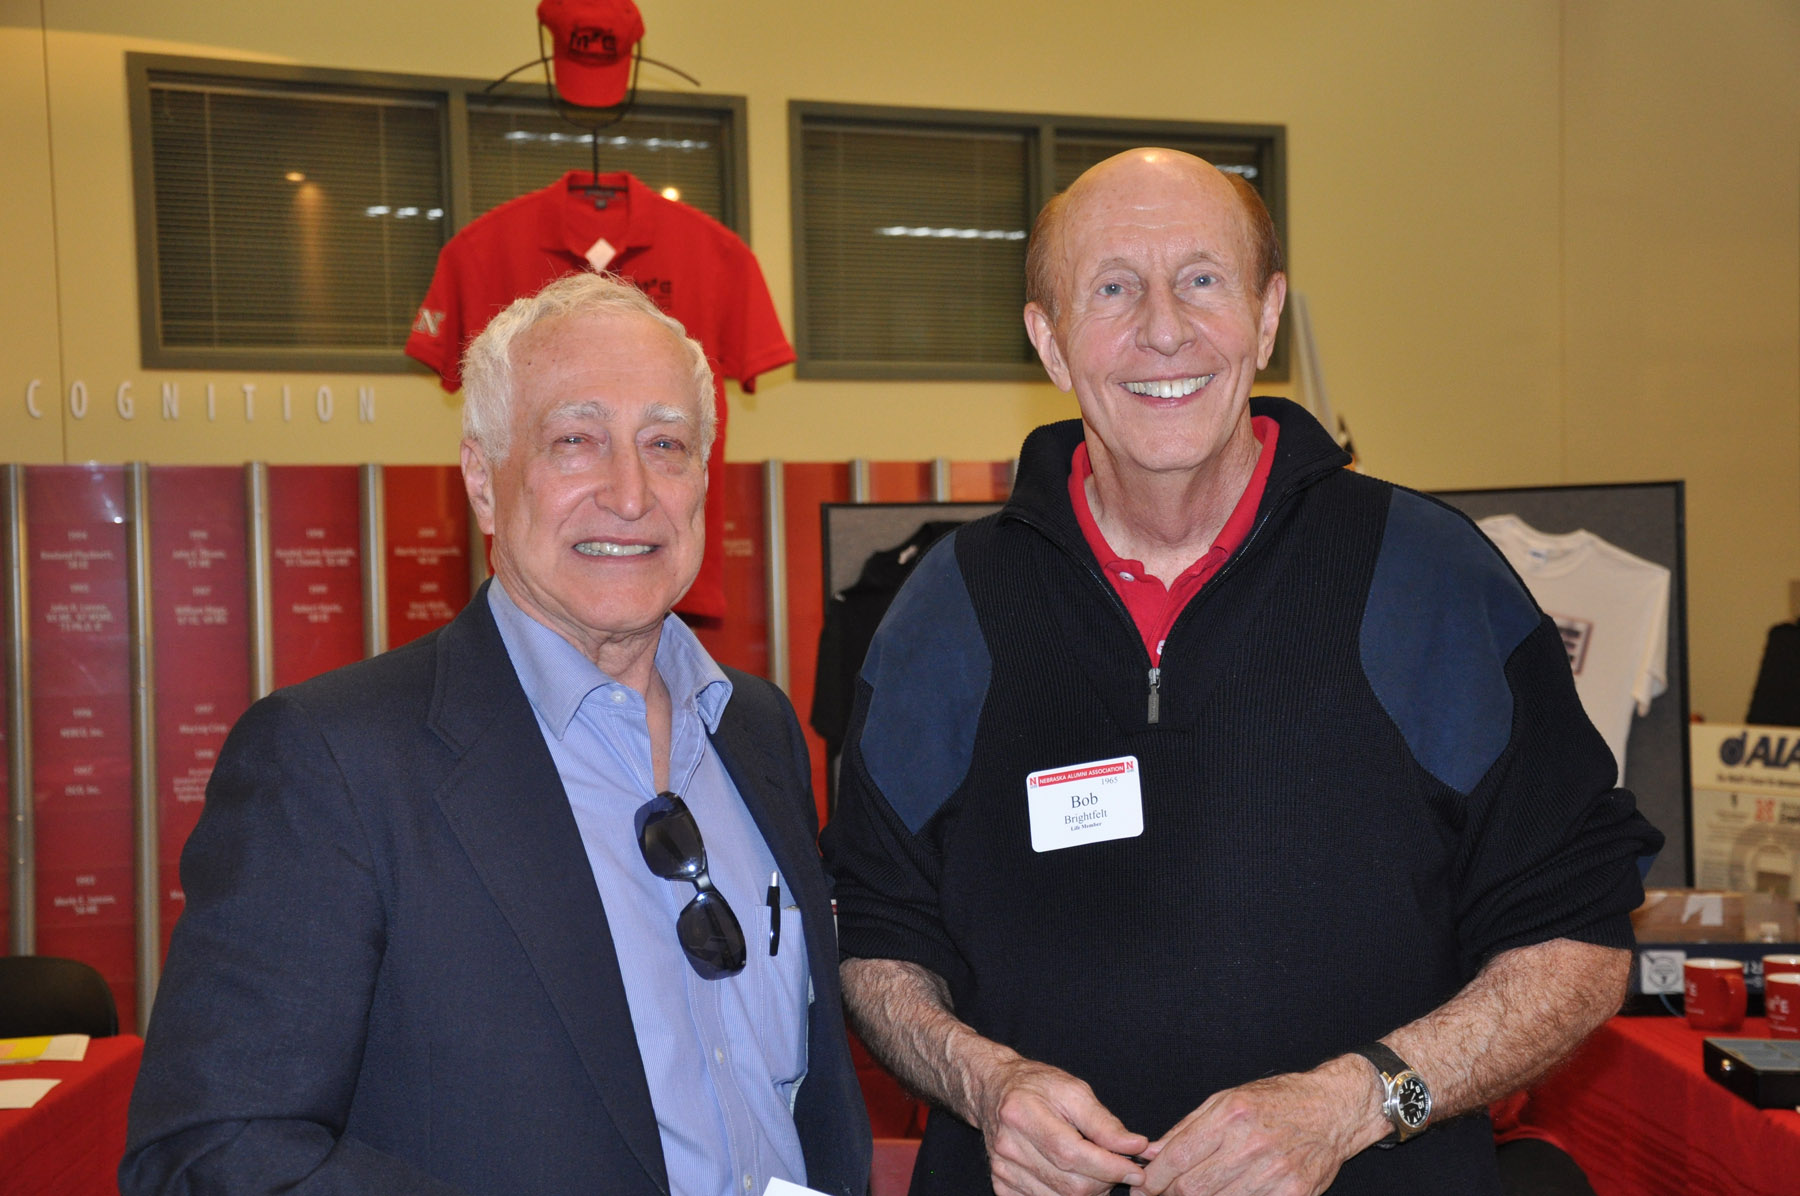 Reunion participants: Charles Burda and Bob Brightfelt